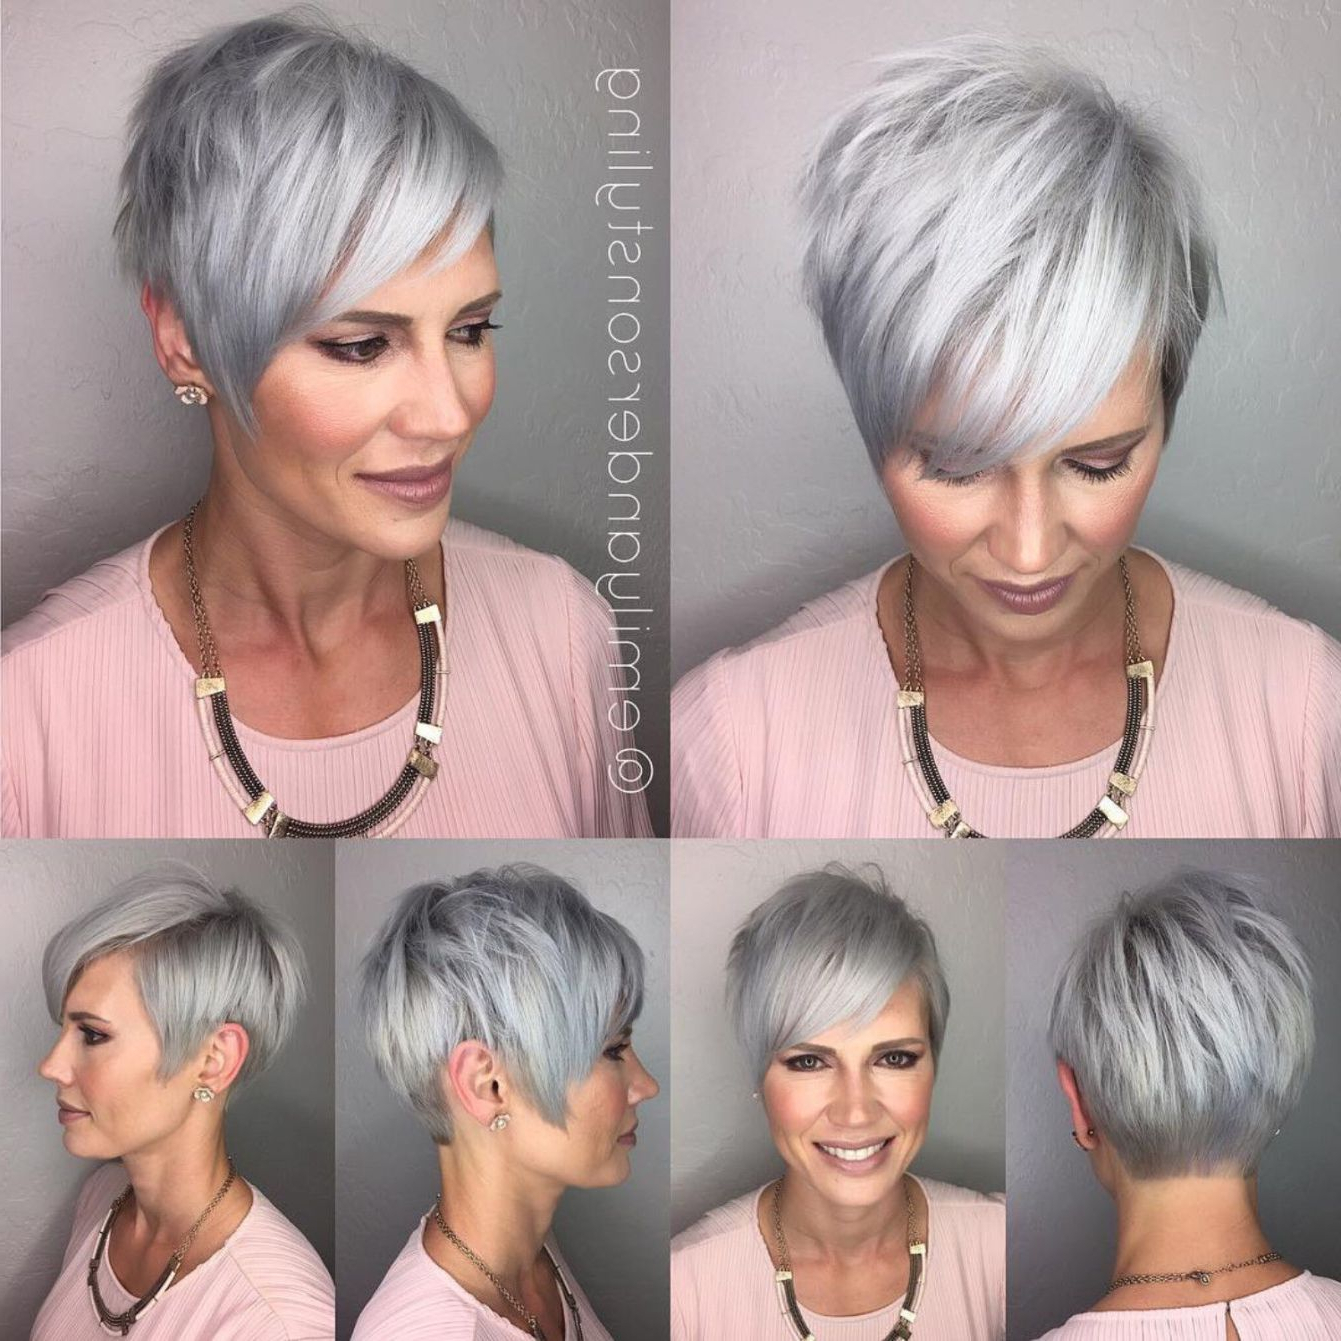 90 Classy And Simple Short Hairstyles For Women Over 50 | Pinterest Within Cropped Gray Pixie Hairstyles With Swoopy Bangs (Gallery 10 of 20)